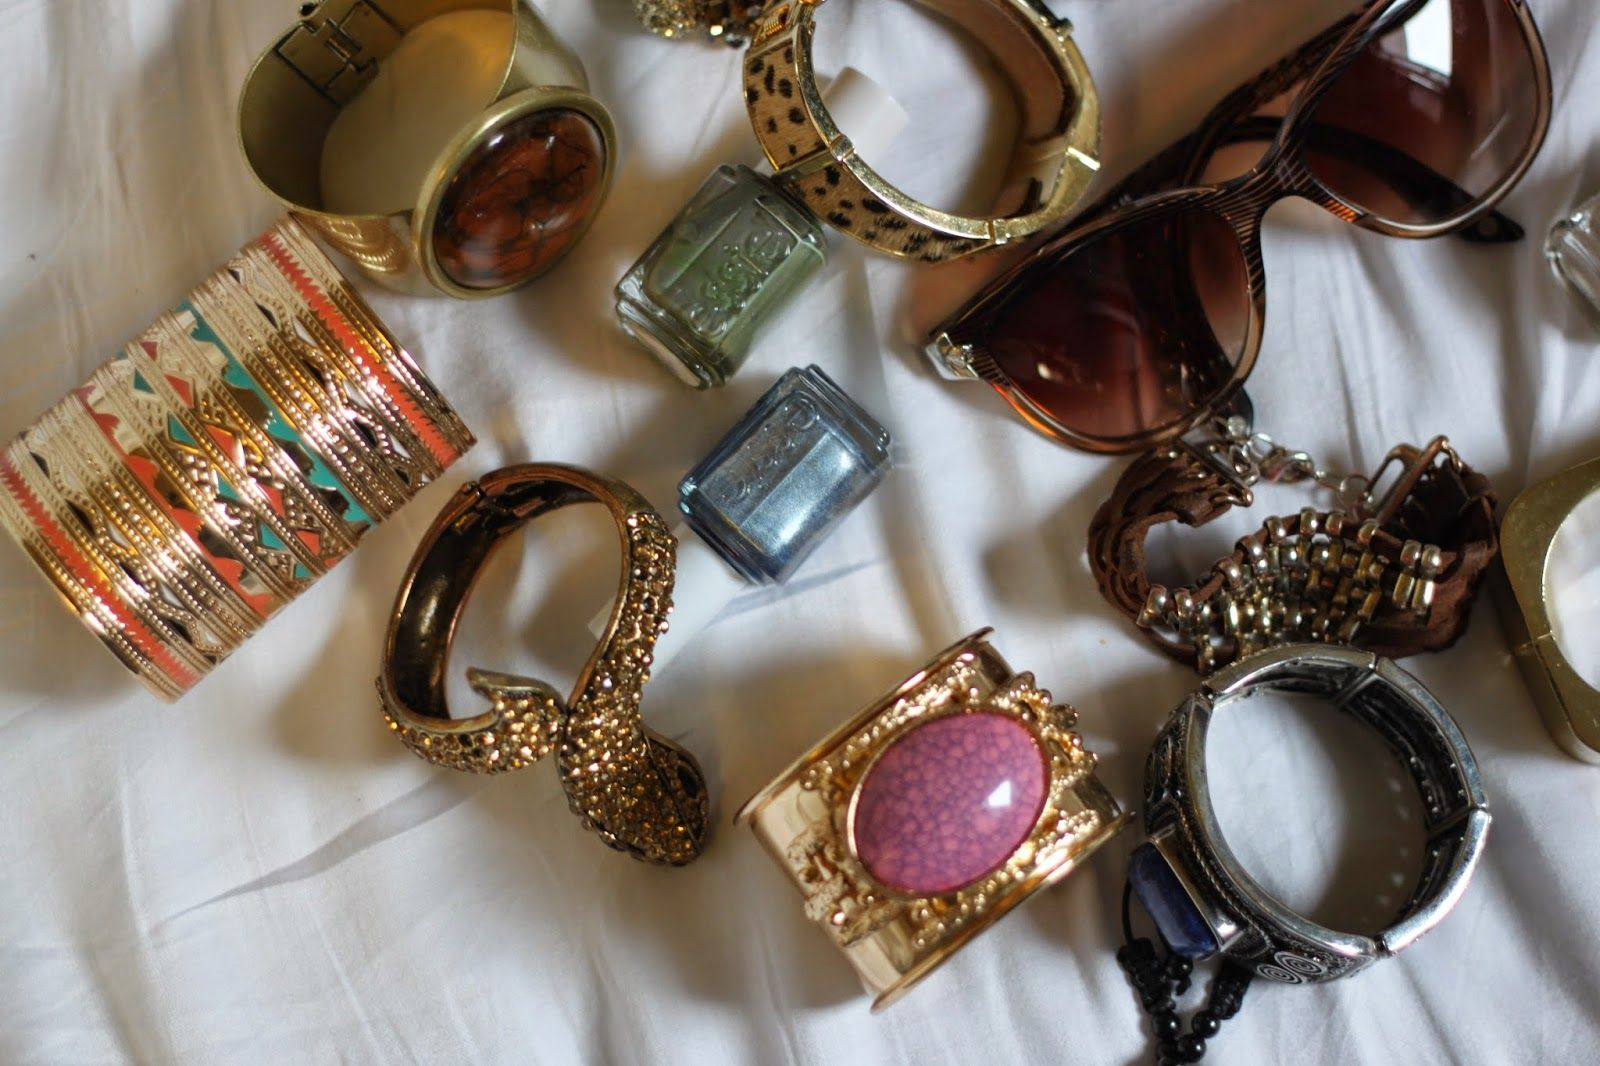 Kimberley Marquis - Fashion, Beauty, Travel, and Lifestyle. : A Peek Into My Accessories Closet.